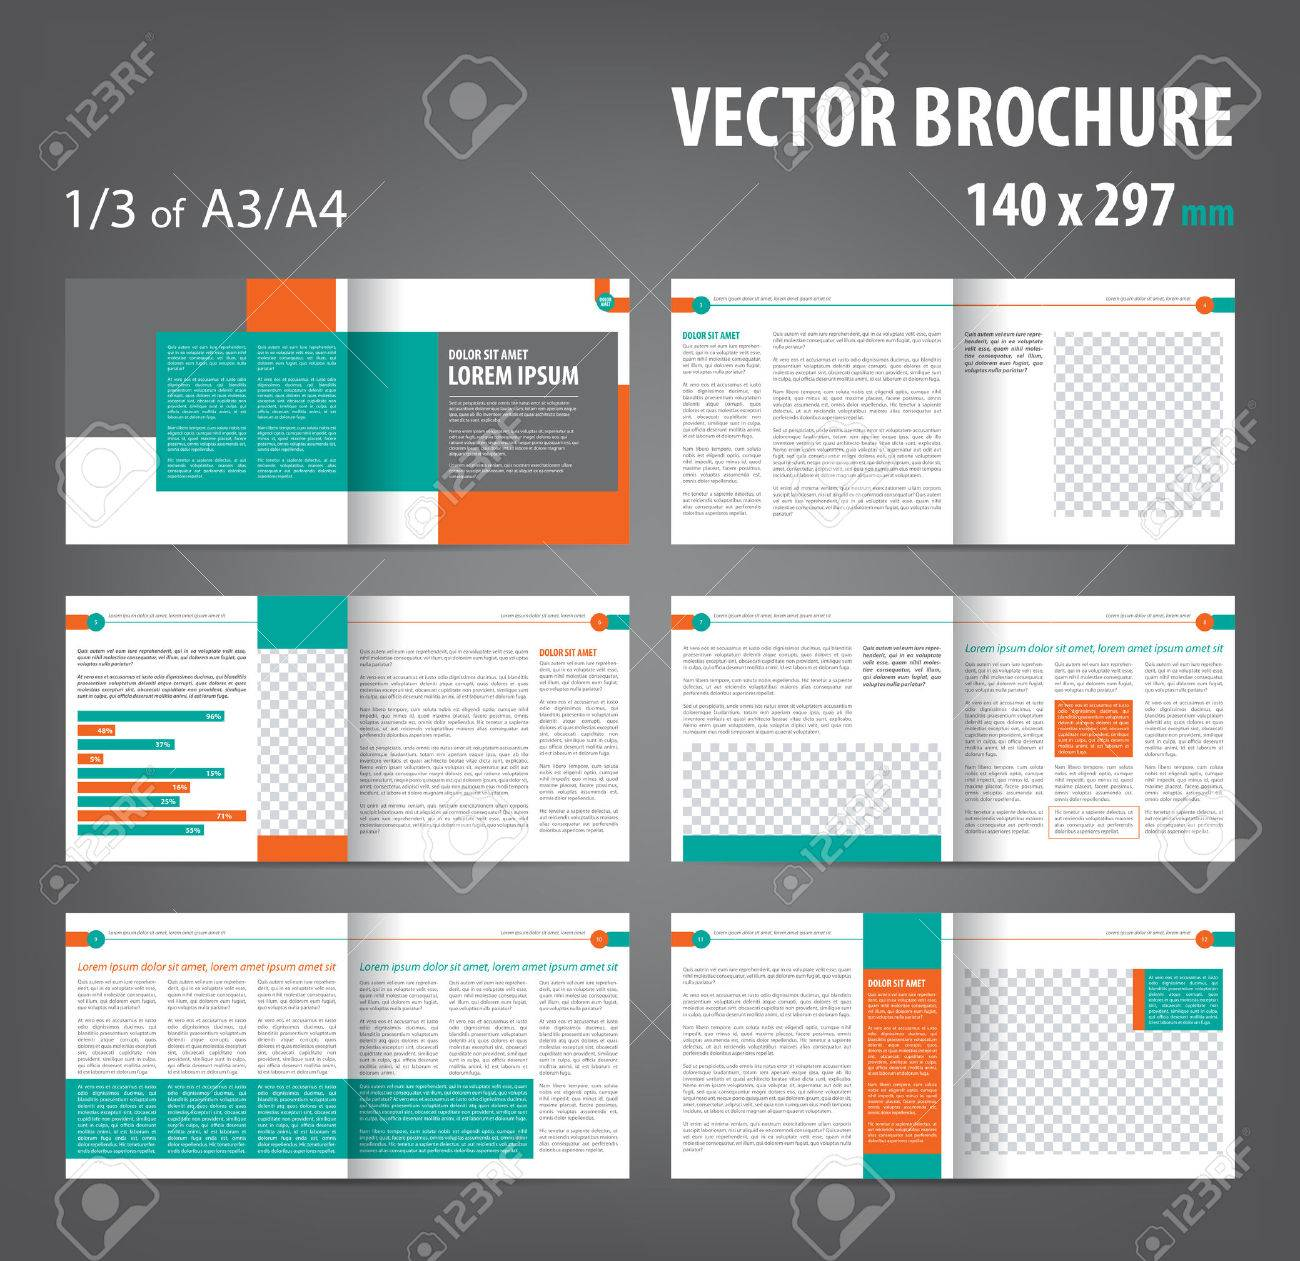 Cool 10 Half Hexagon Template Tiny 10 Minute Resume Rectangular 1099 Misc Form Template 1099 Template Word Youthful 1st Birthday Invite Templates Green1st Job Resume Objective Vector Empty Bi Fold Brochure Print Template Design, Bifold Bright ..